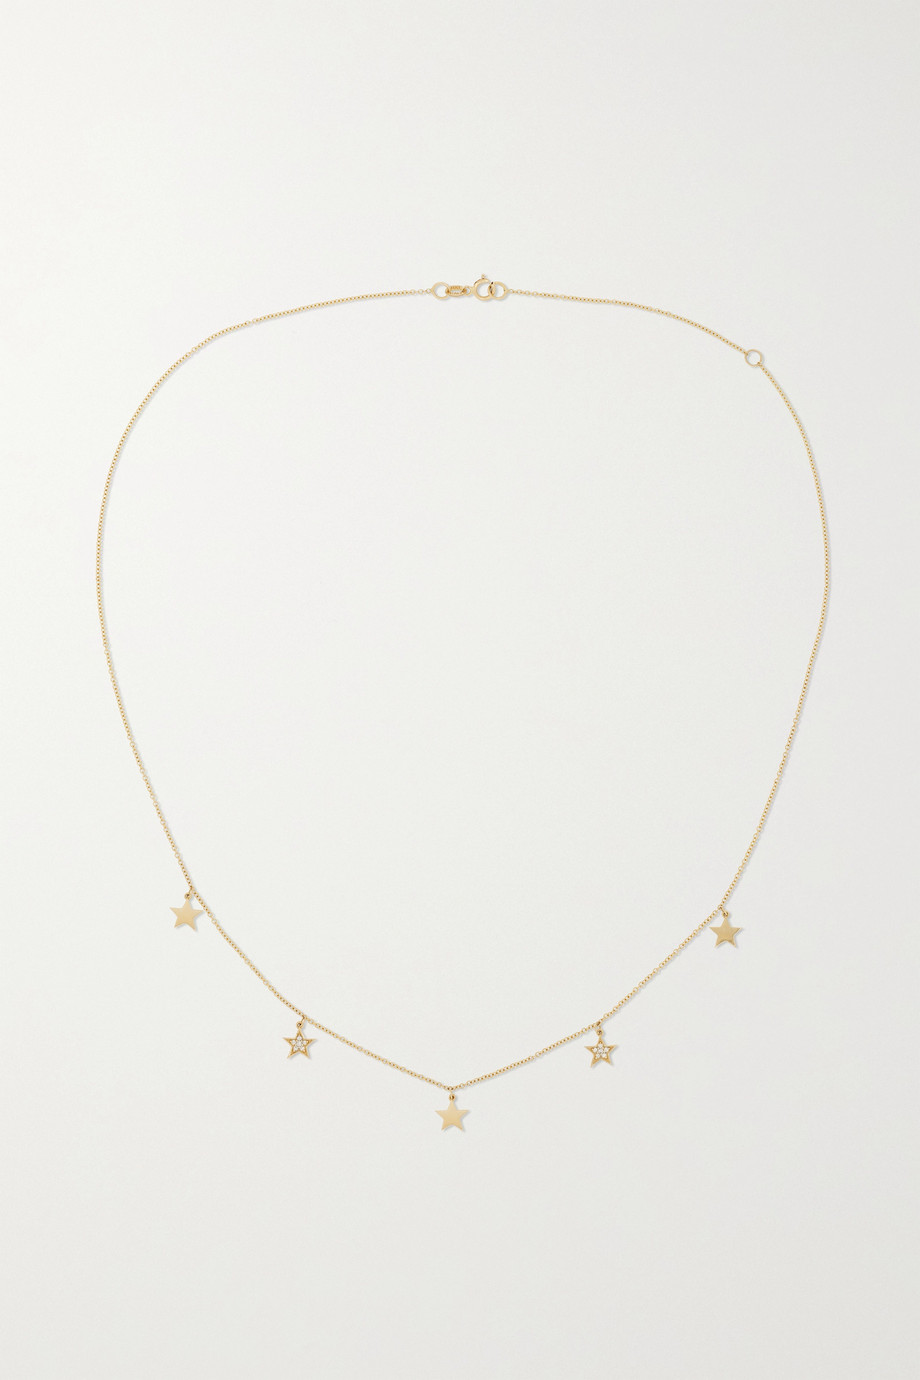 ANDREA FOHRMAN Star 14-karat gold diamond necklace